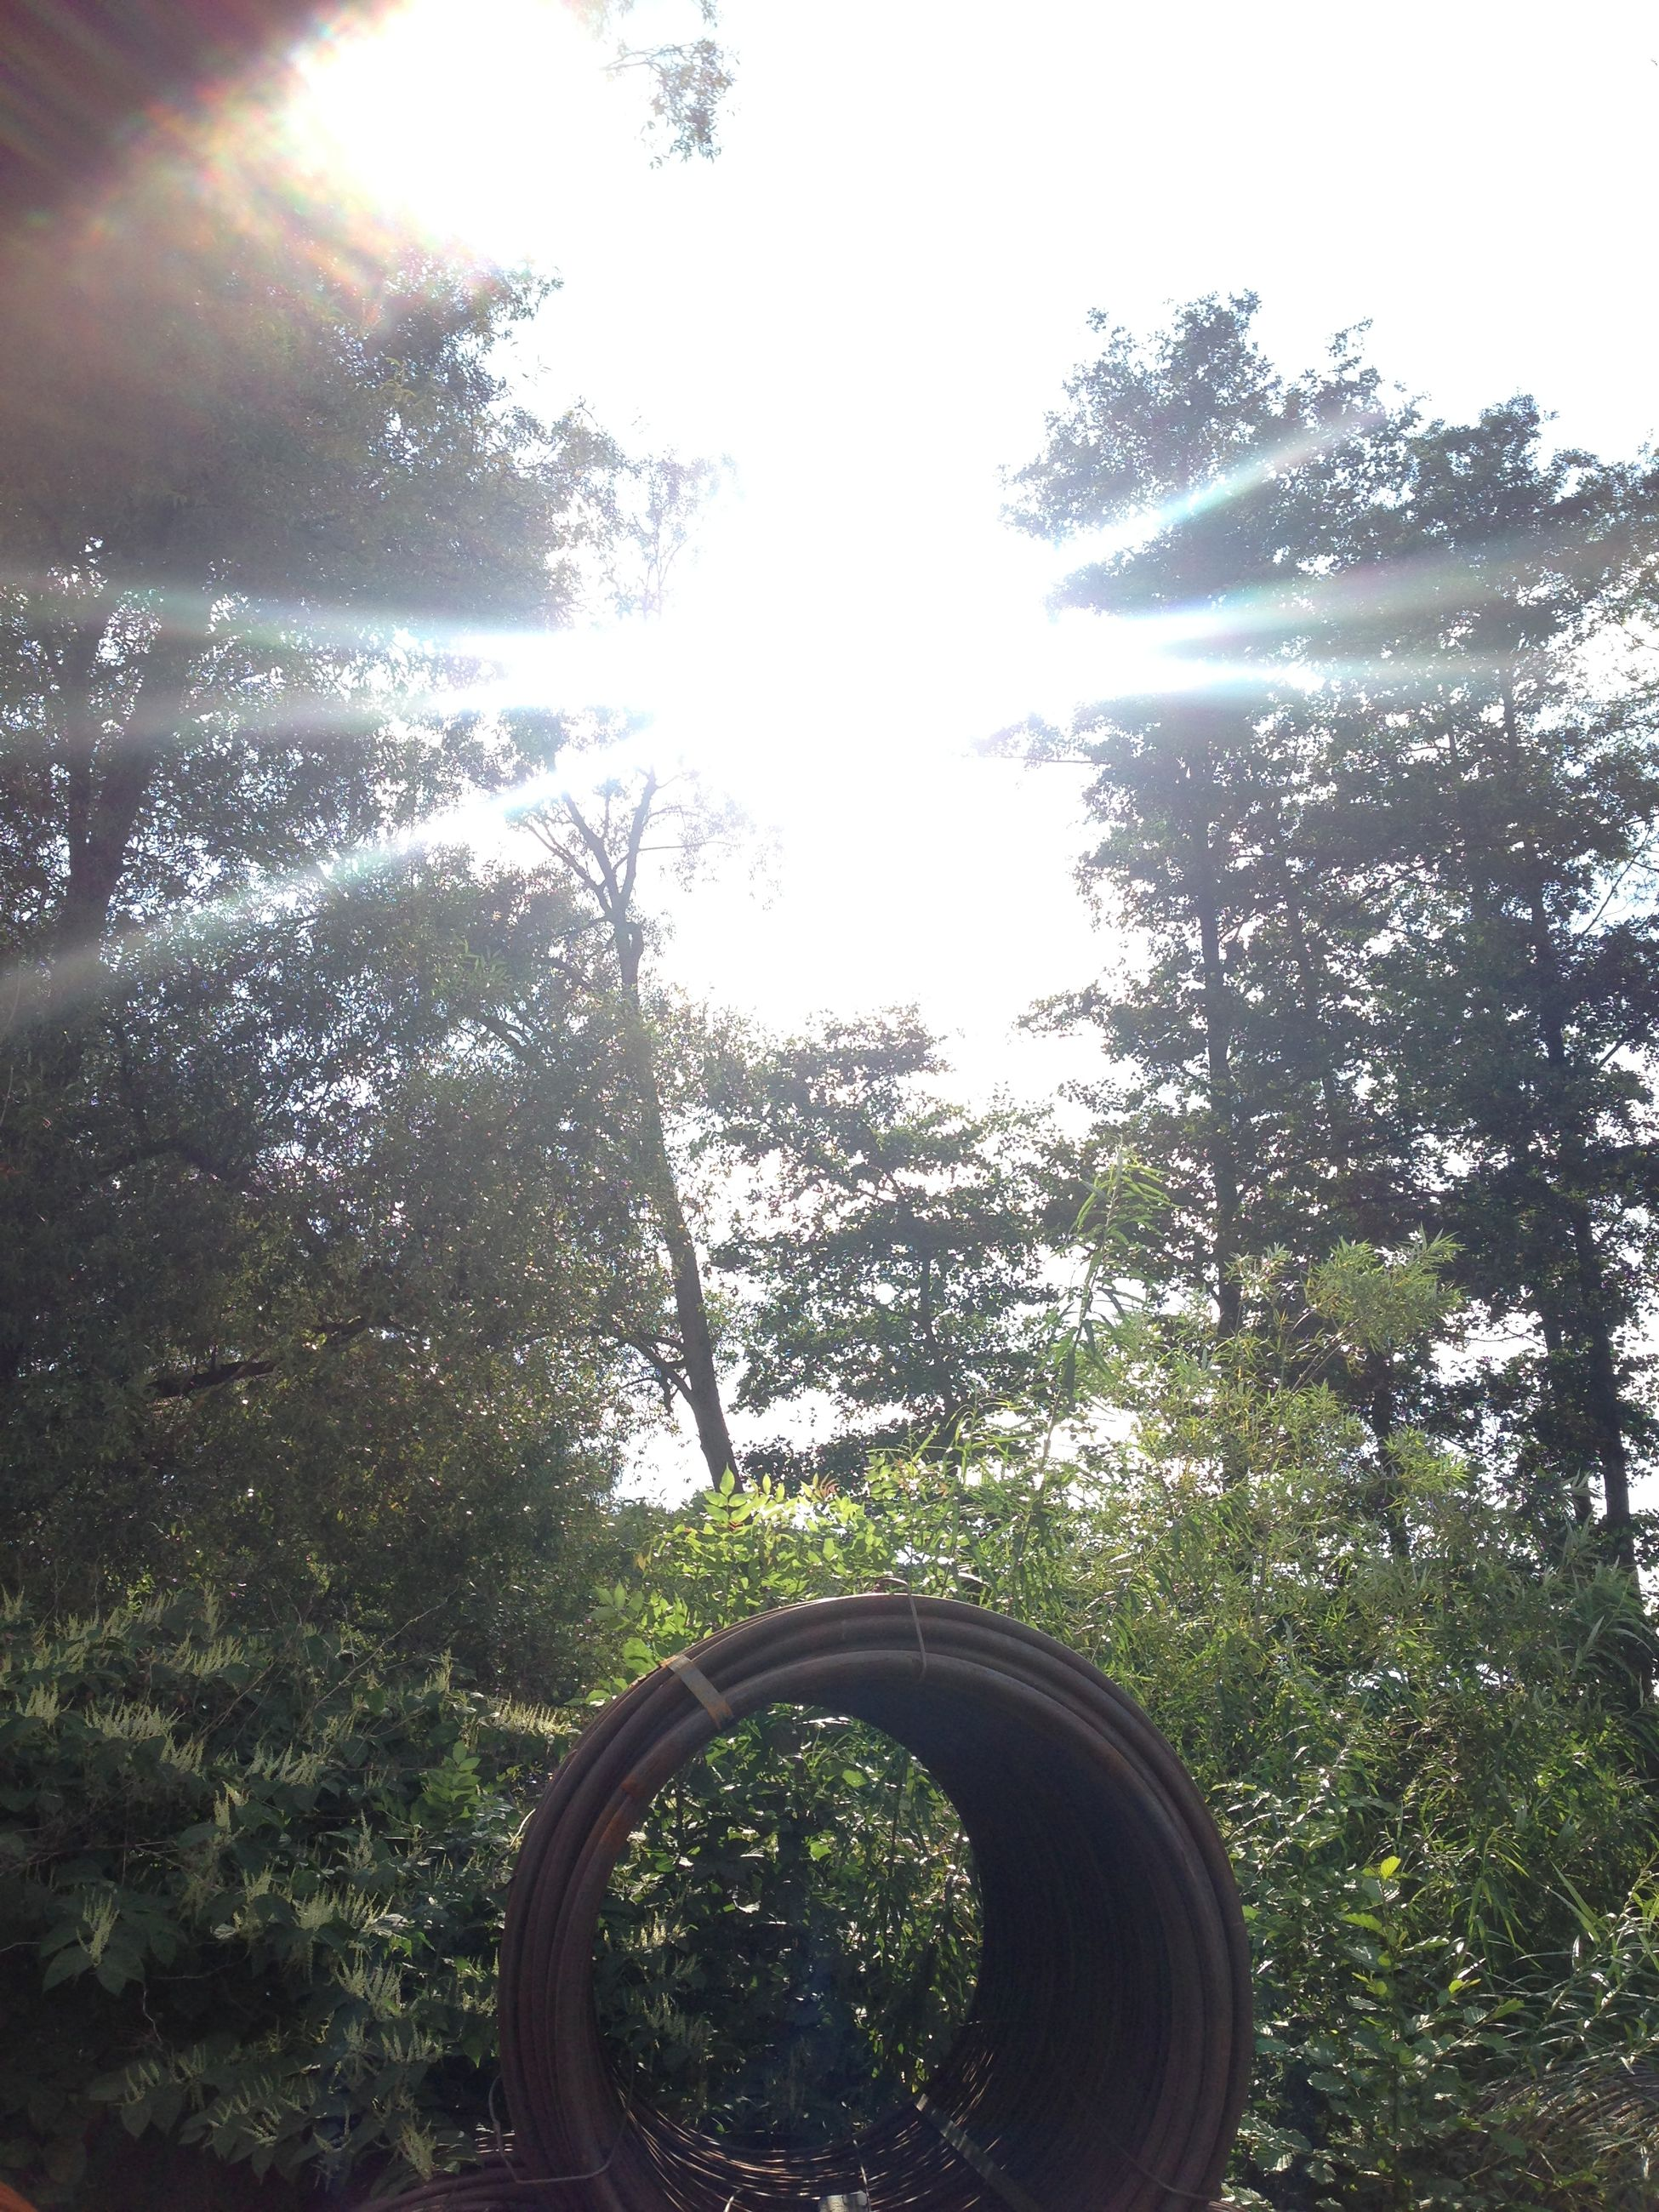 sun, sunbeam, tree, low angle view, sunlight, lens flare, bright, growth, sunny, nature, shiny, clear sky, tranquility, day, beauty in nature, streaming, sky, outdoors, no people, back lit